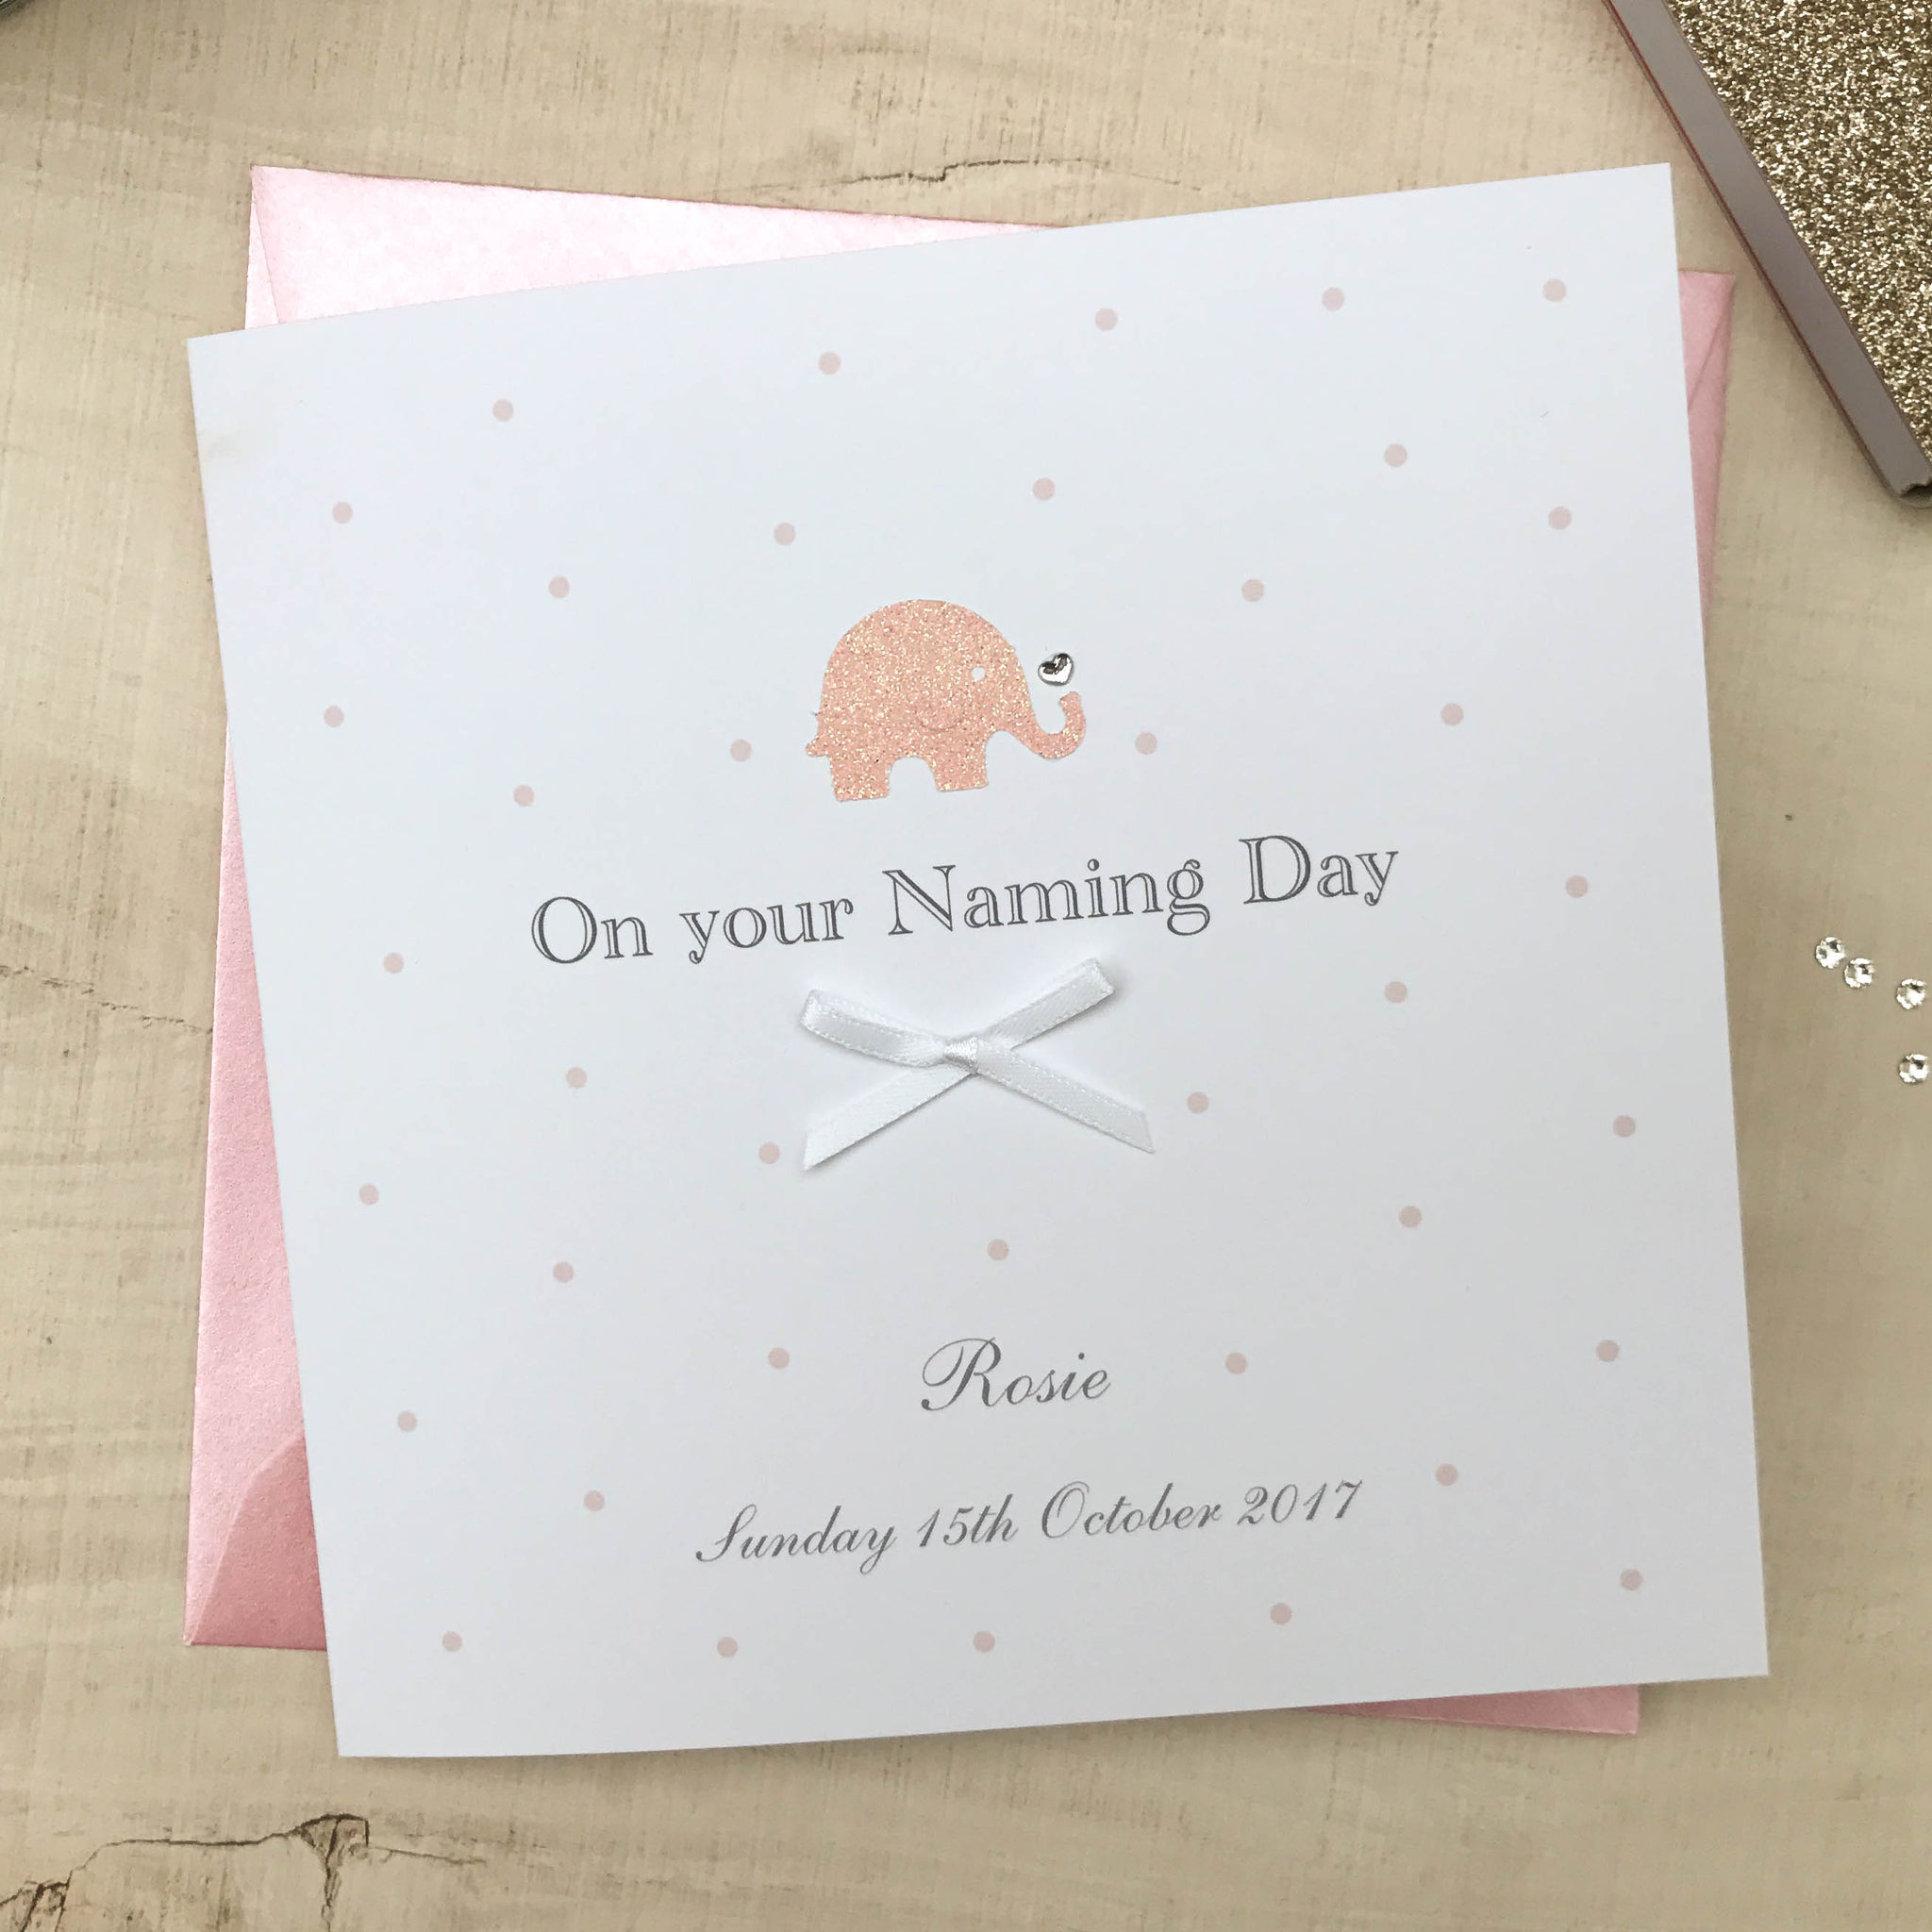 Personalised Baby Naming Day Card